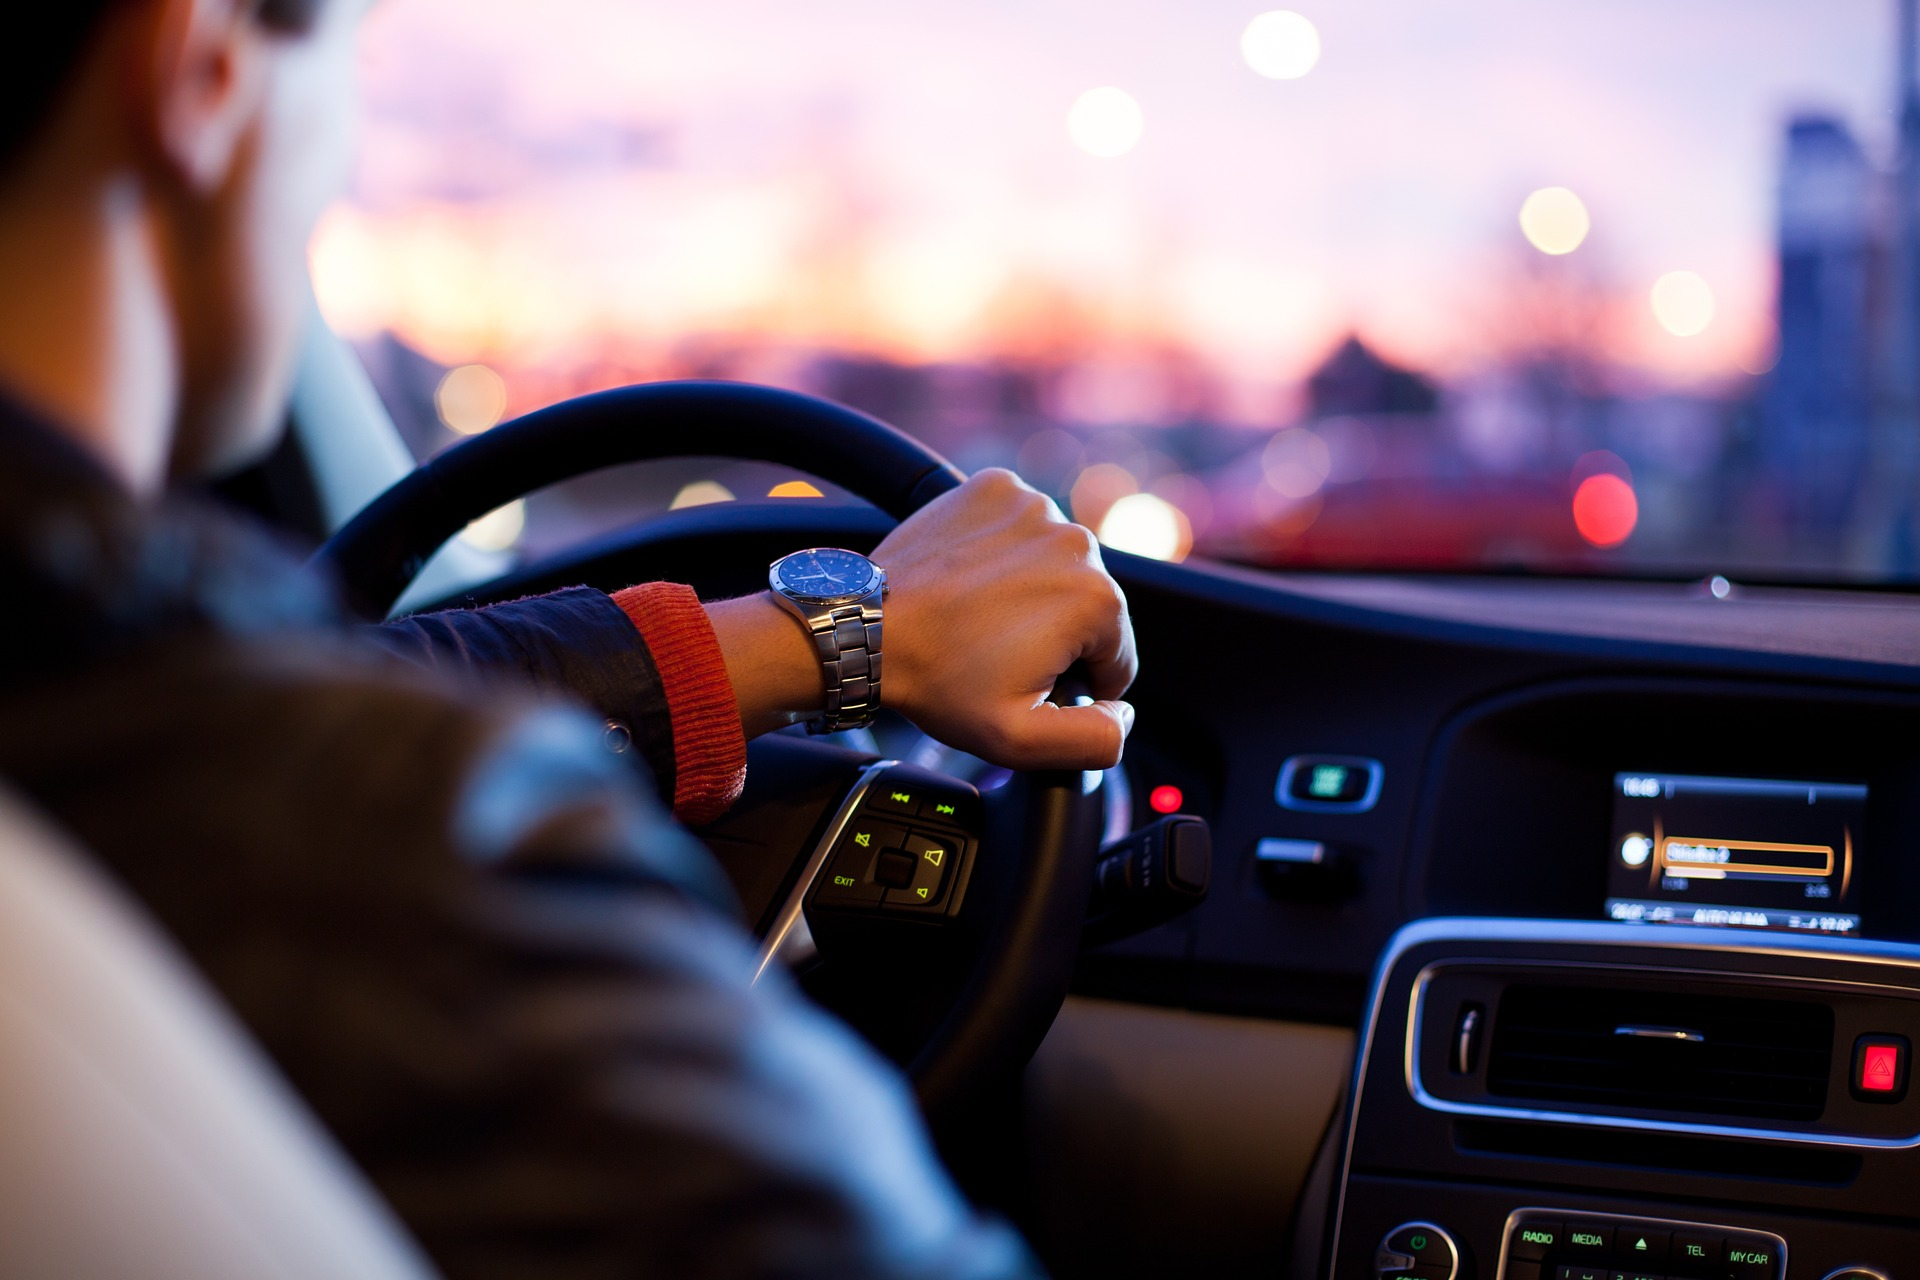 #TechTuesday: Top Five Apps for Motorists